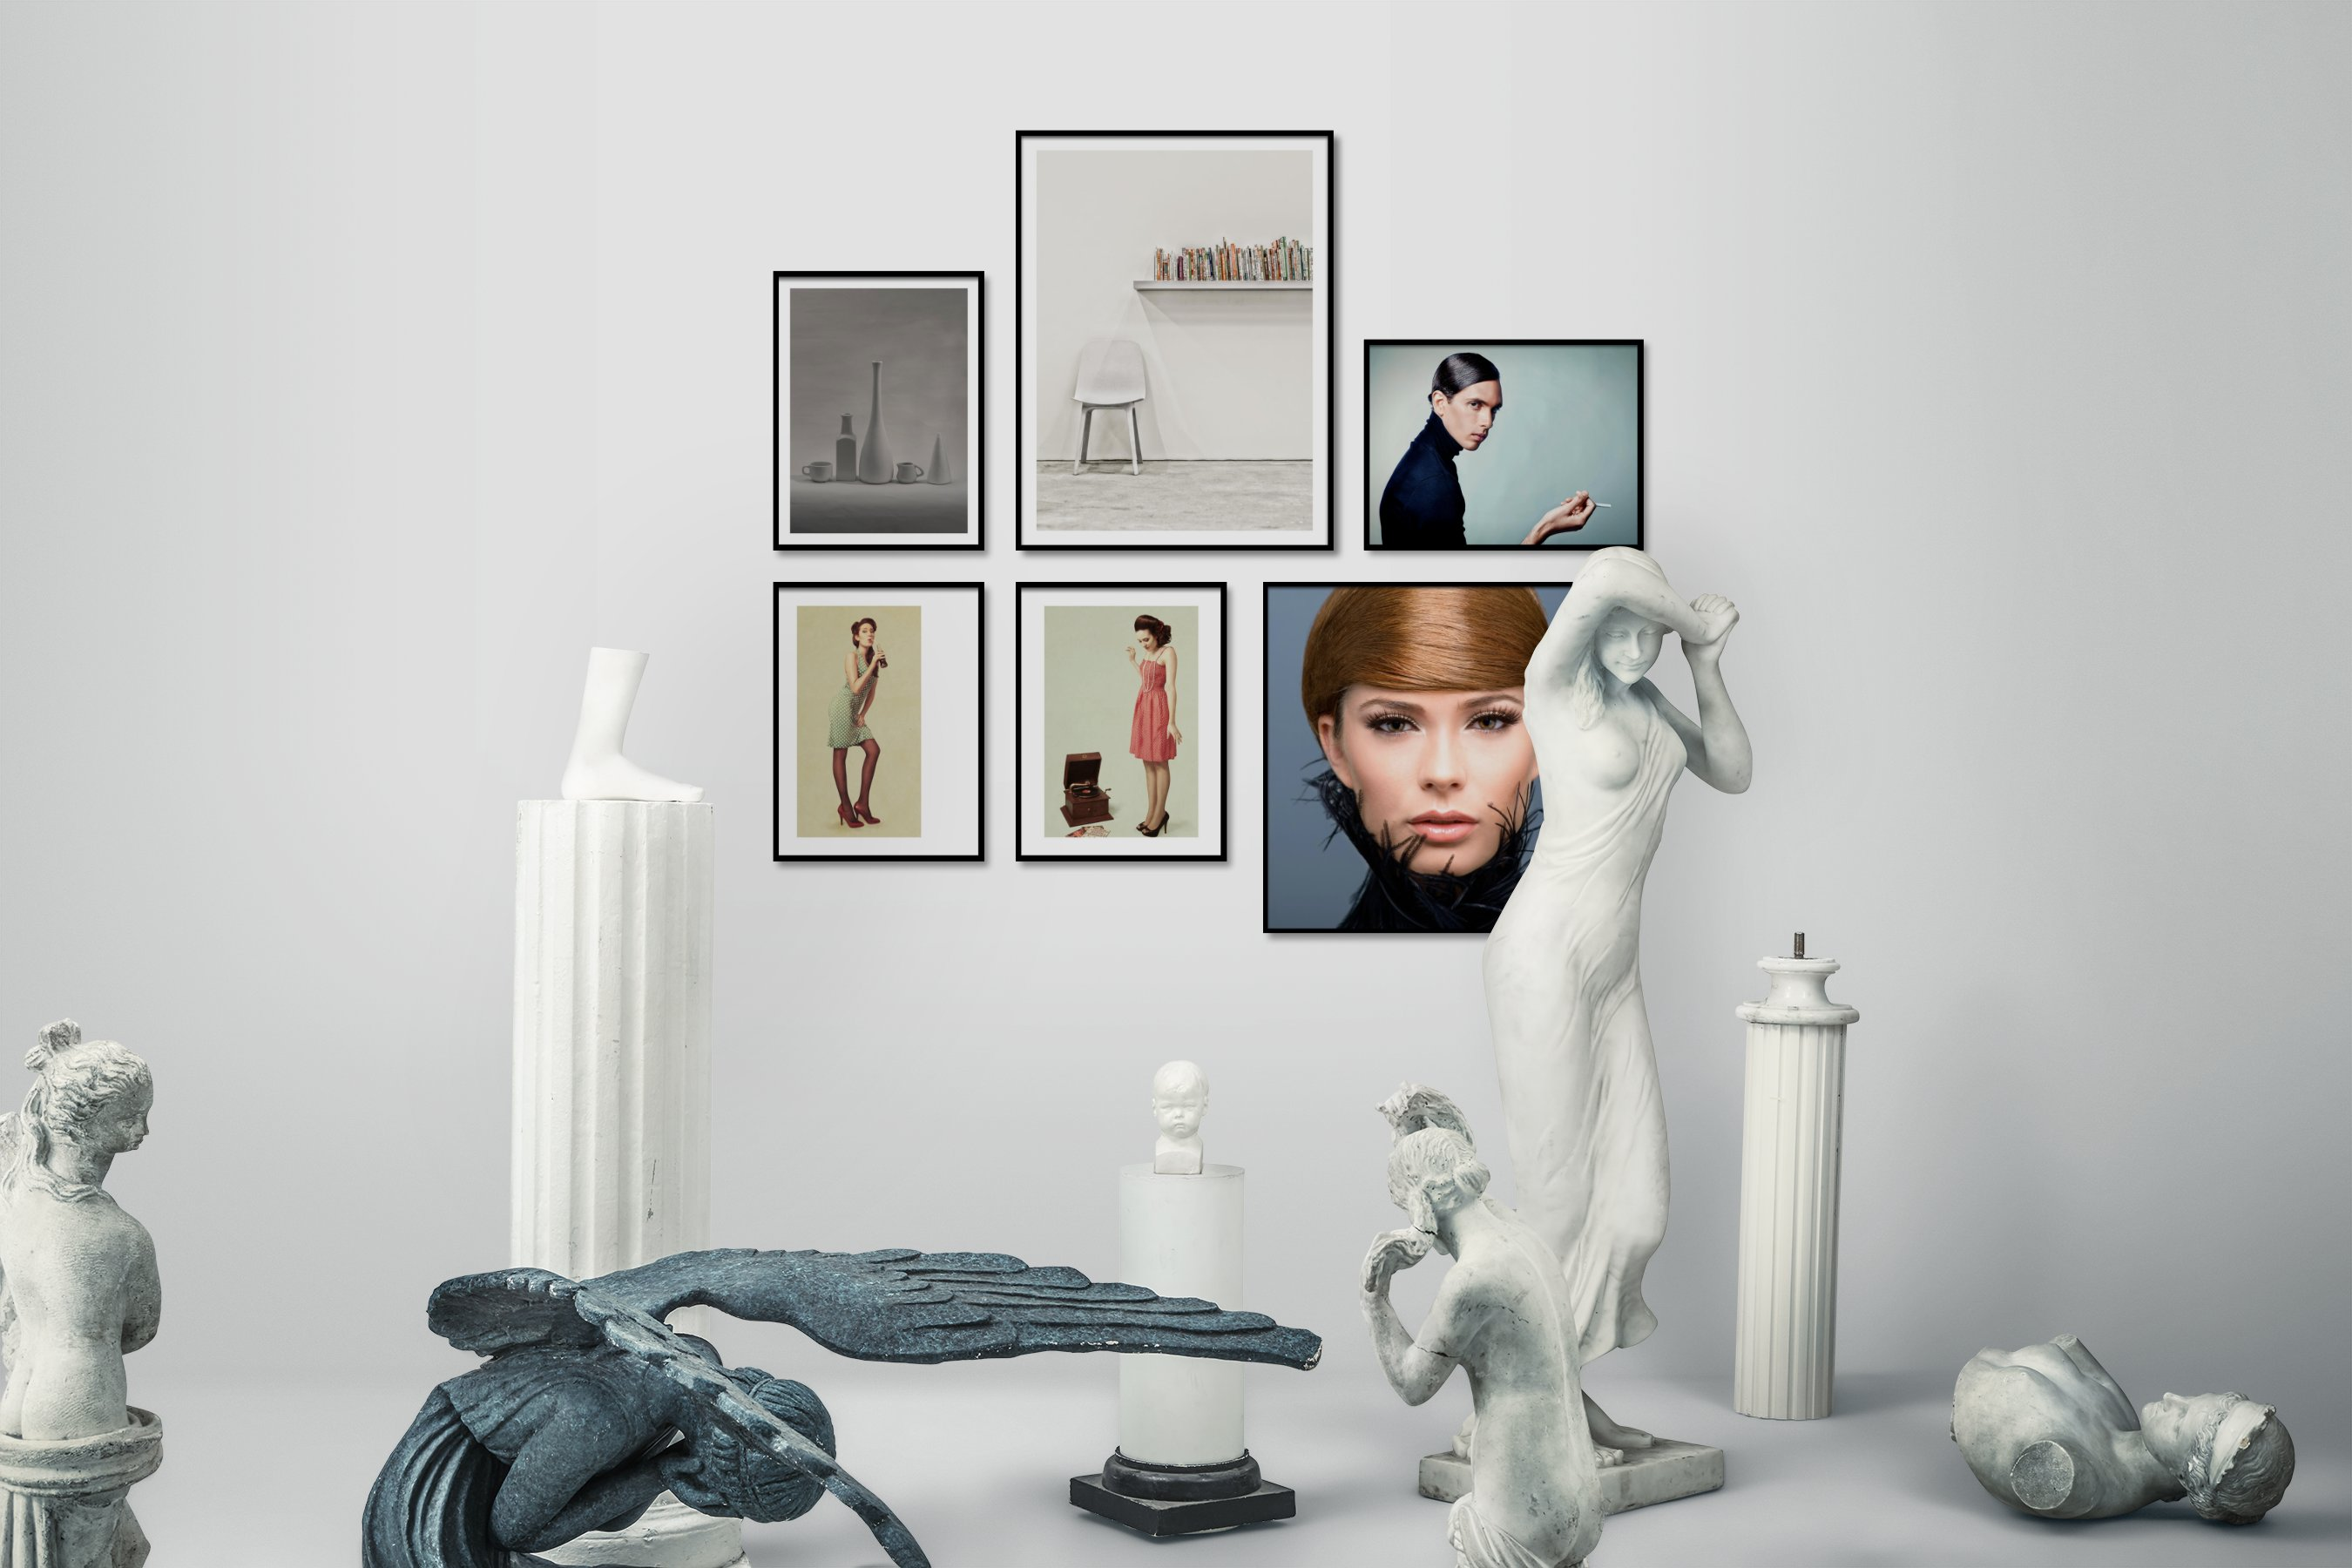 Gallery wall idea with six framed pictures arranged on a wall depicting Black & White, For the Minimalist, Fashion & Beauty, and Vintage